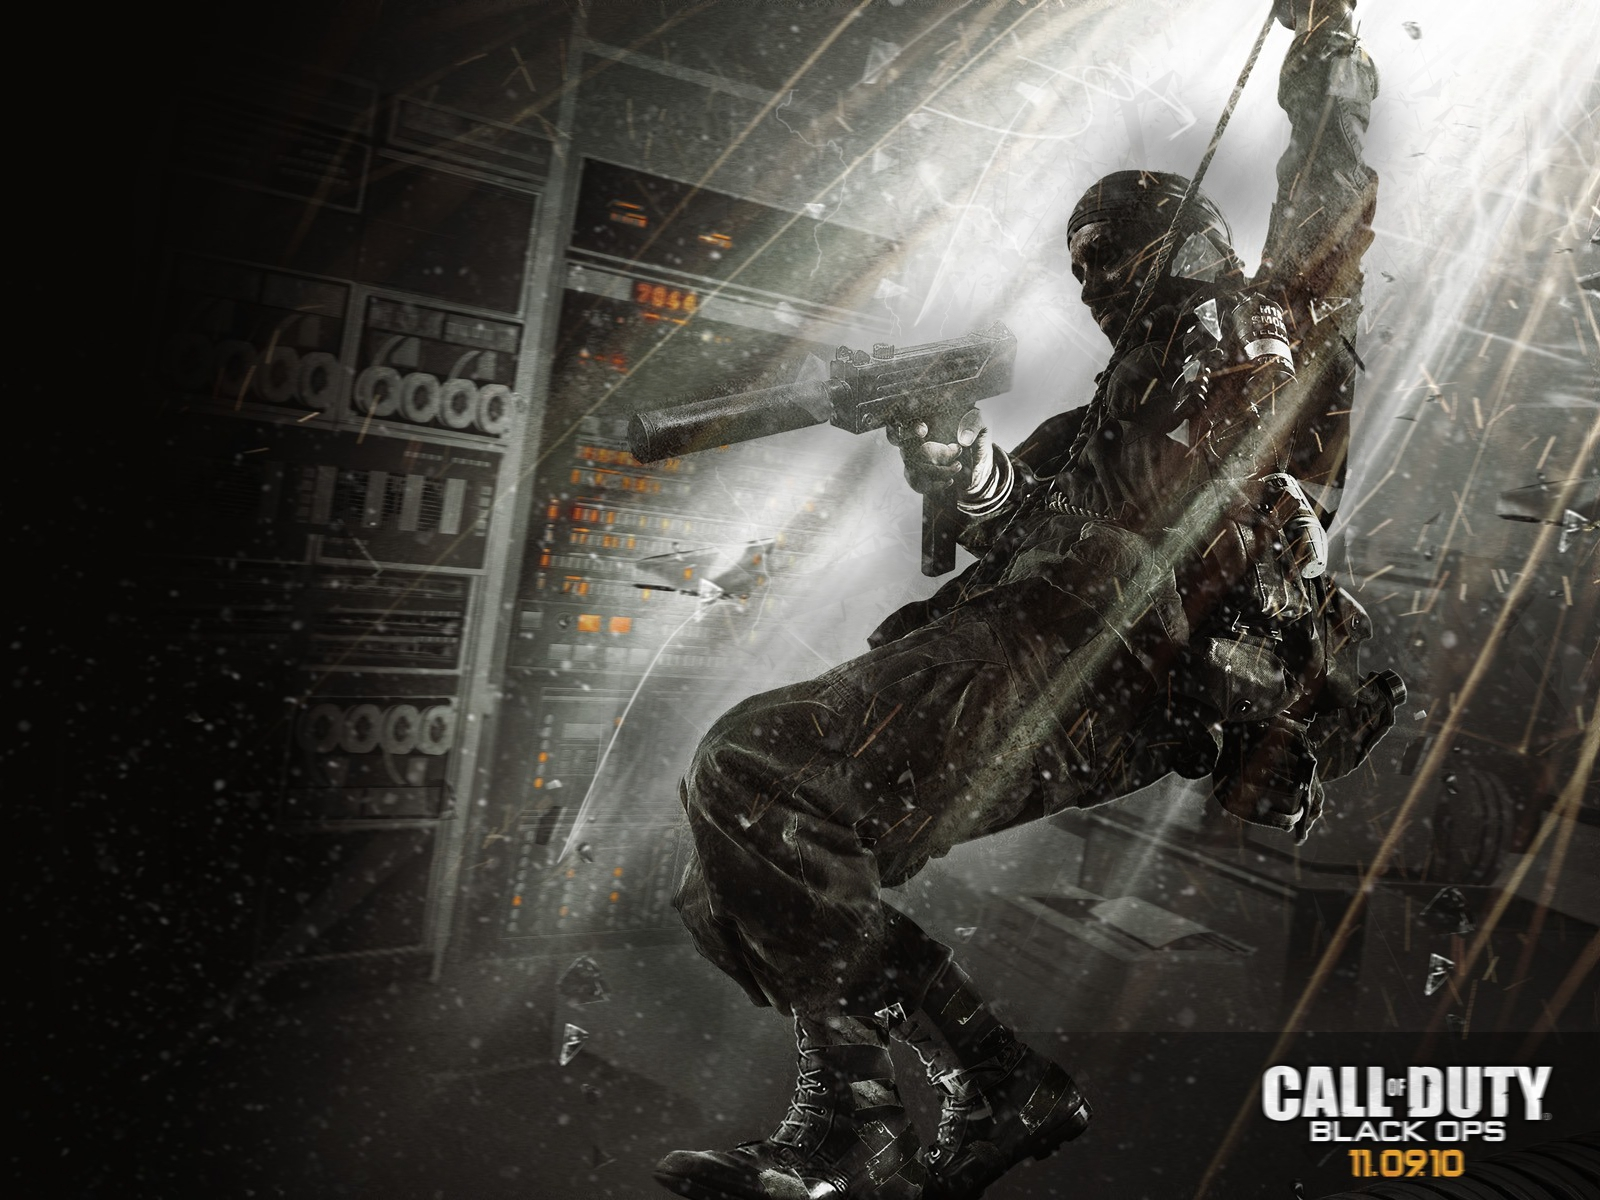 Call Of Duty Black Ops 2 HD Wallpaper 1080p PiCsHoliC 1600x1200